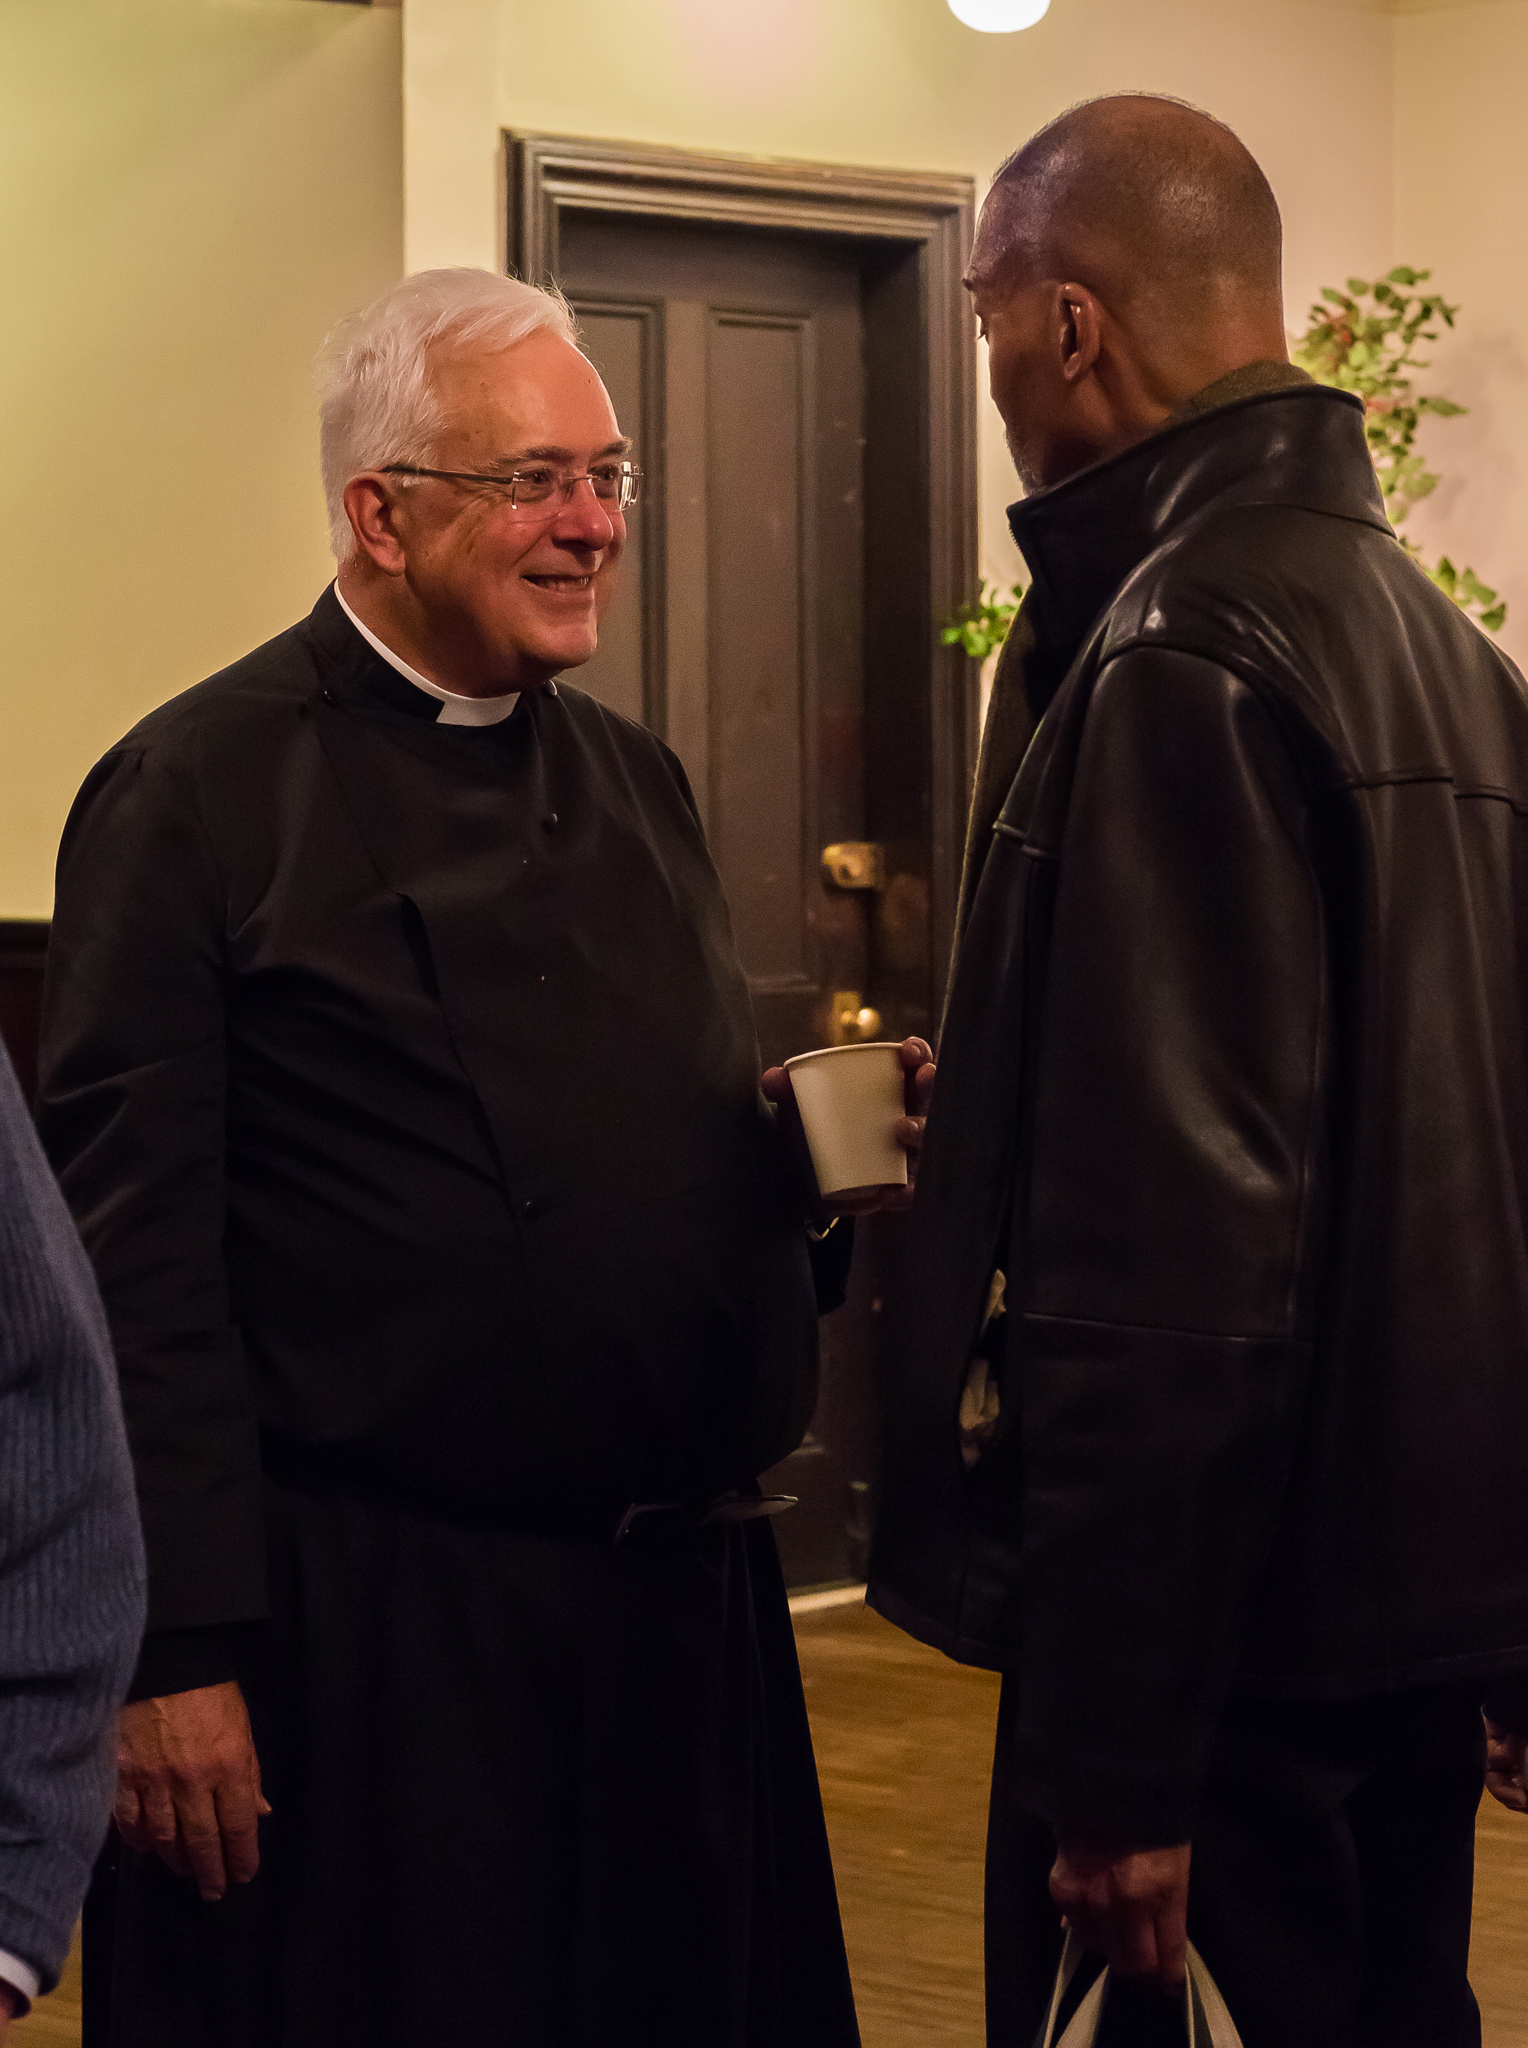 Father Pete Powell and Charles Carson at Coffee Hour after the Solemn Mass.     Photo by Ricardo Gomez